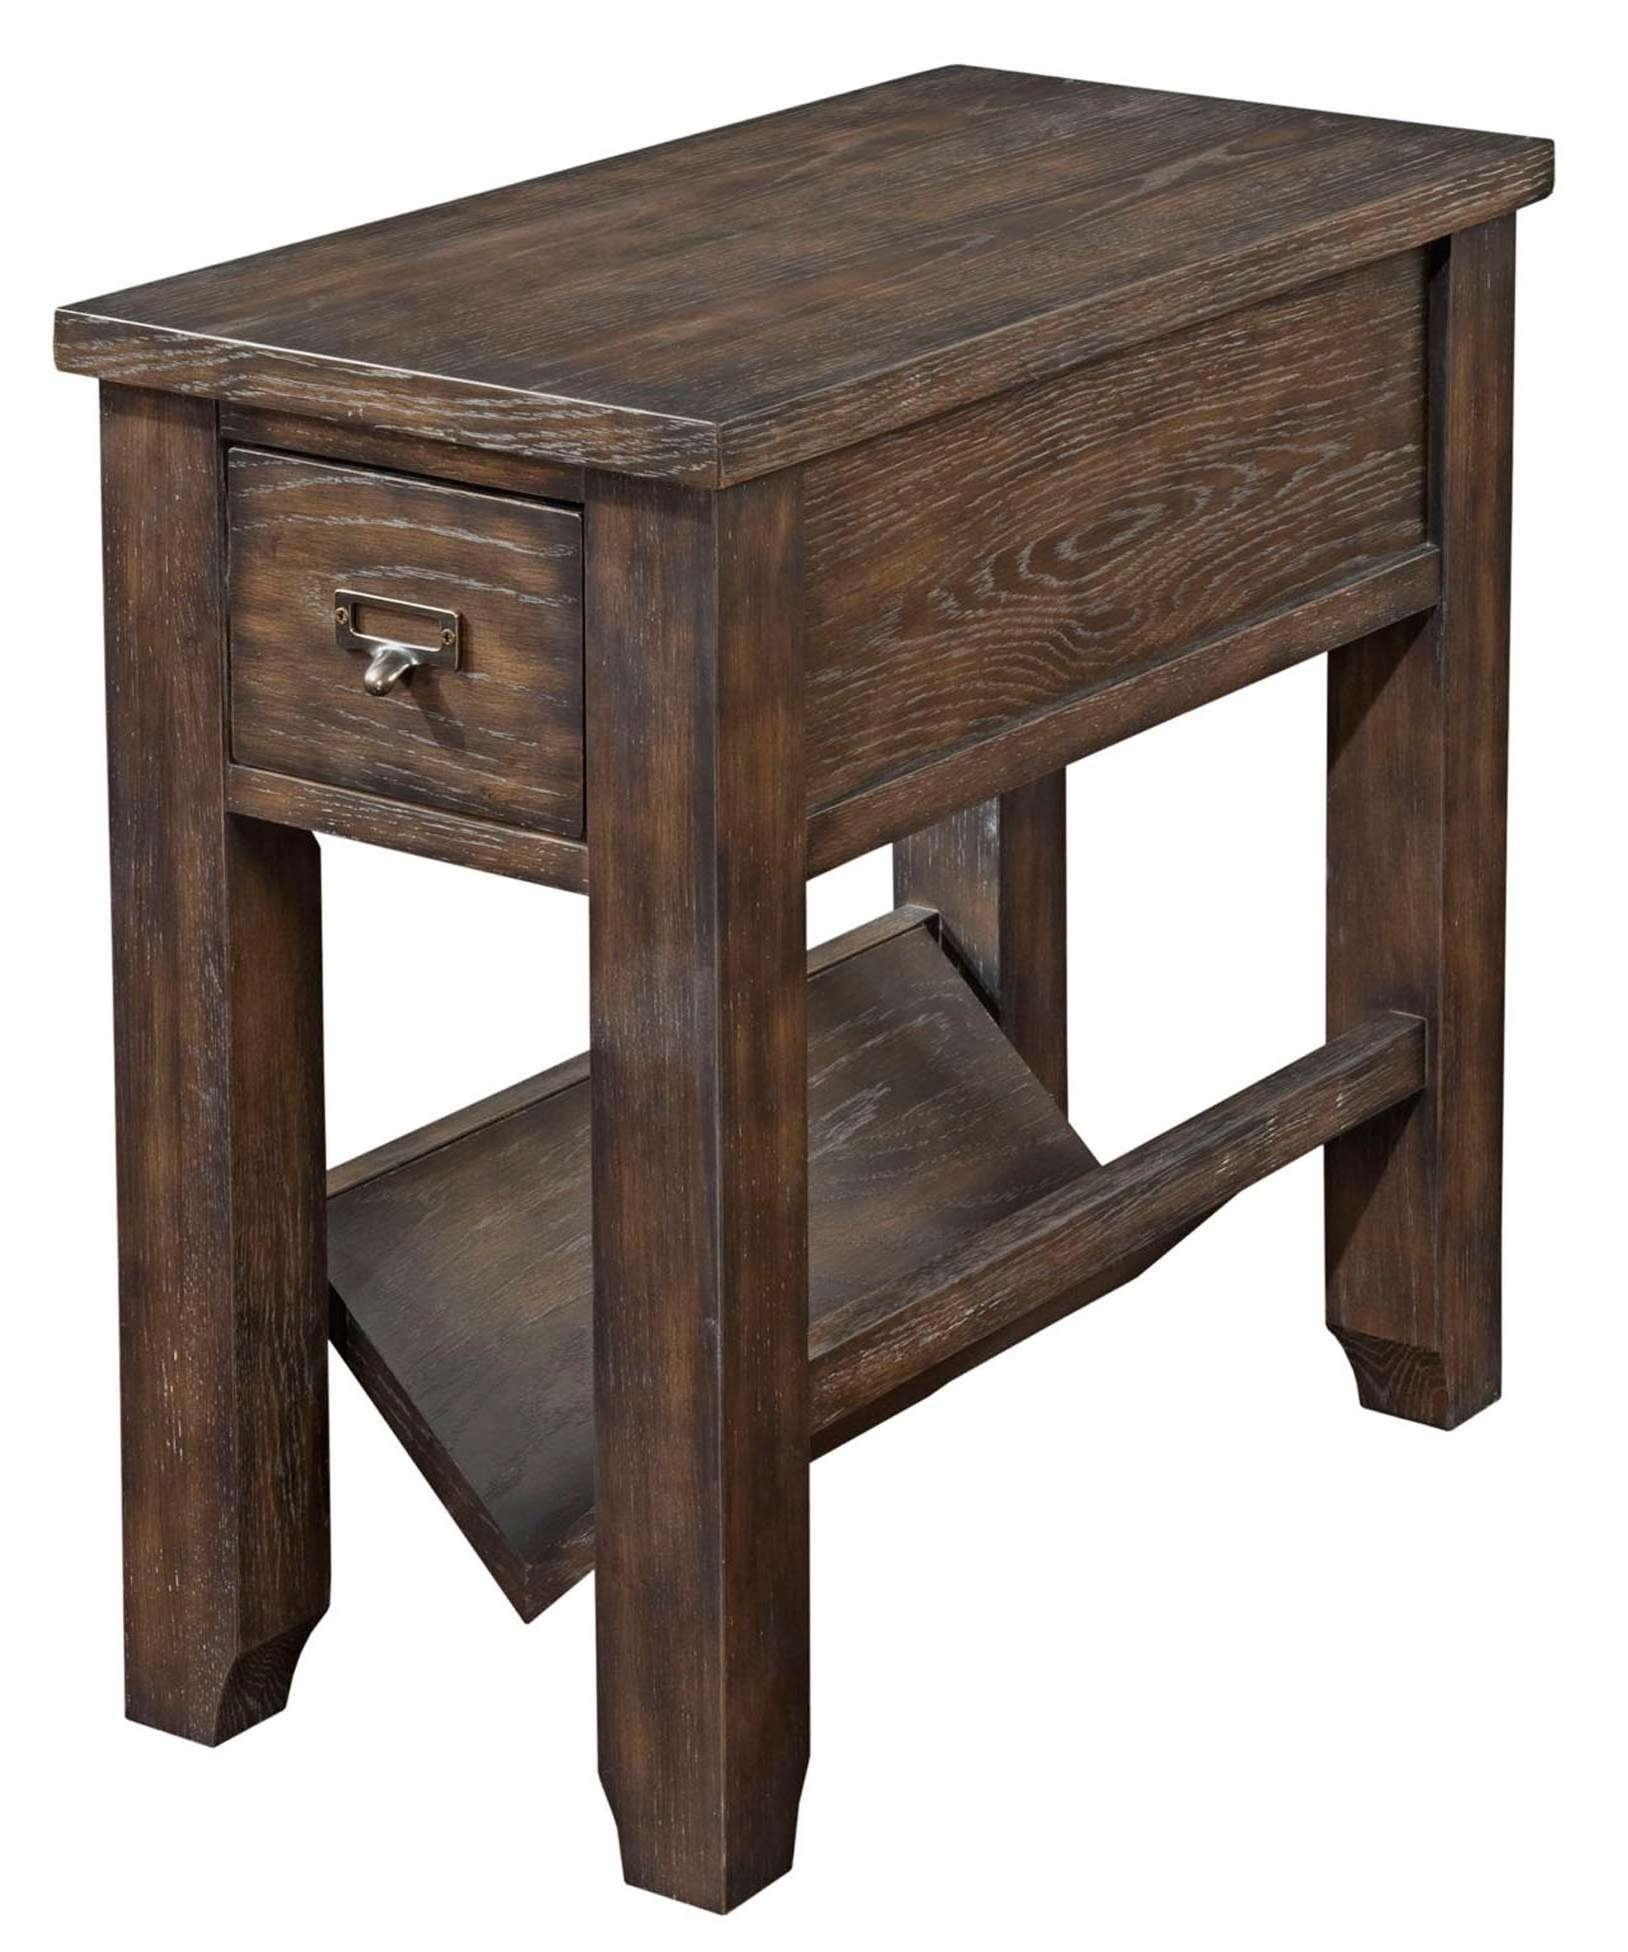 Broyhill Furniture Attic Retreat Rustic Style Chairside Table With Inside Popular Coffee Tables With Magazine Storage (View 7 of 20)